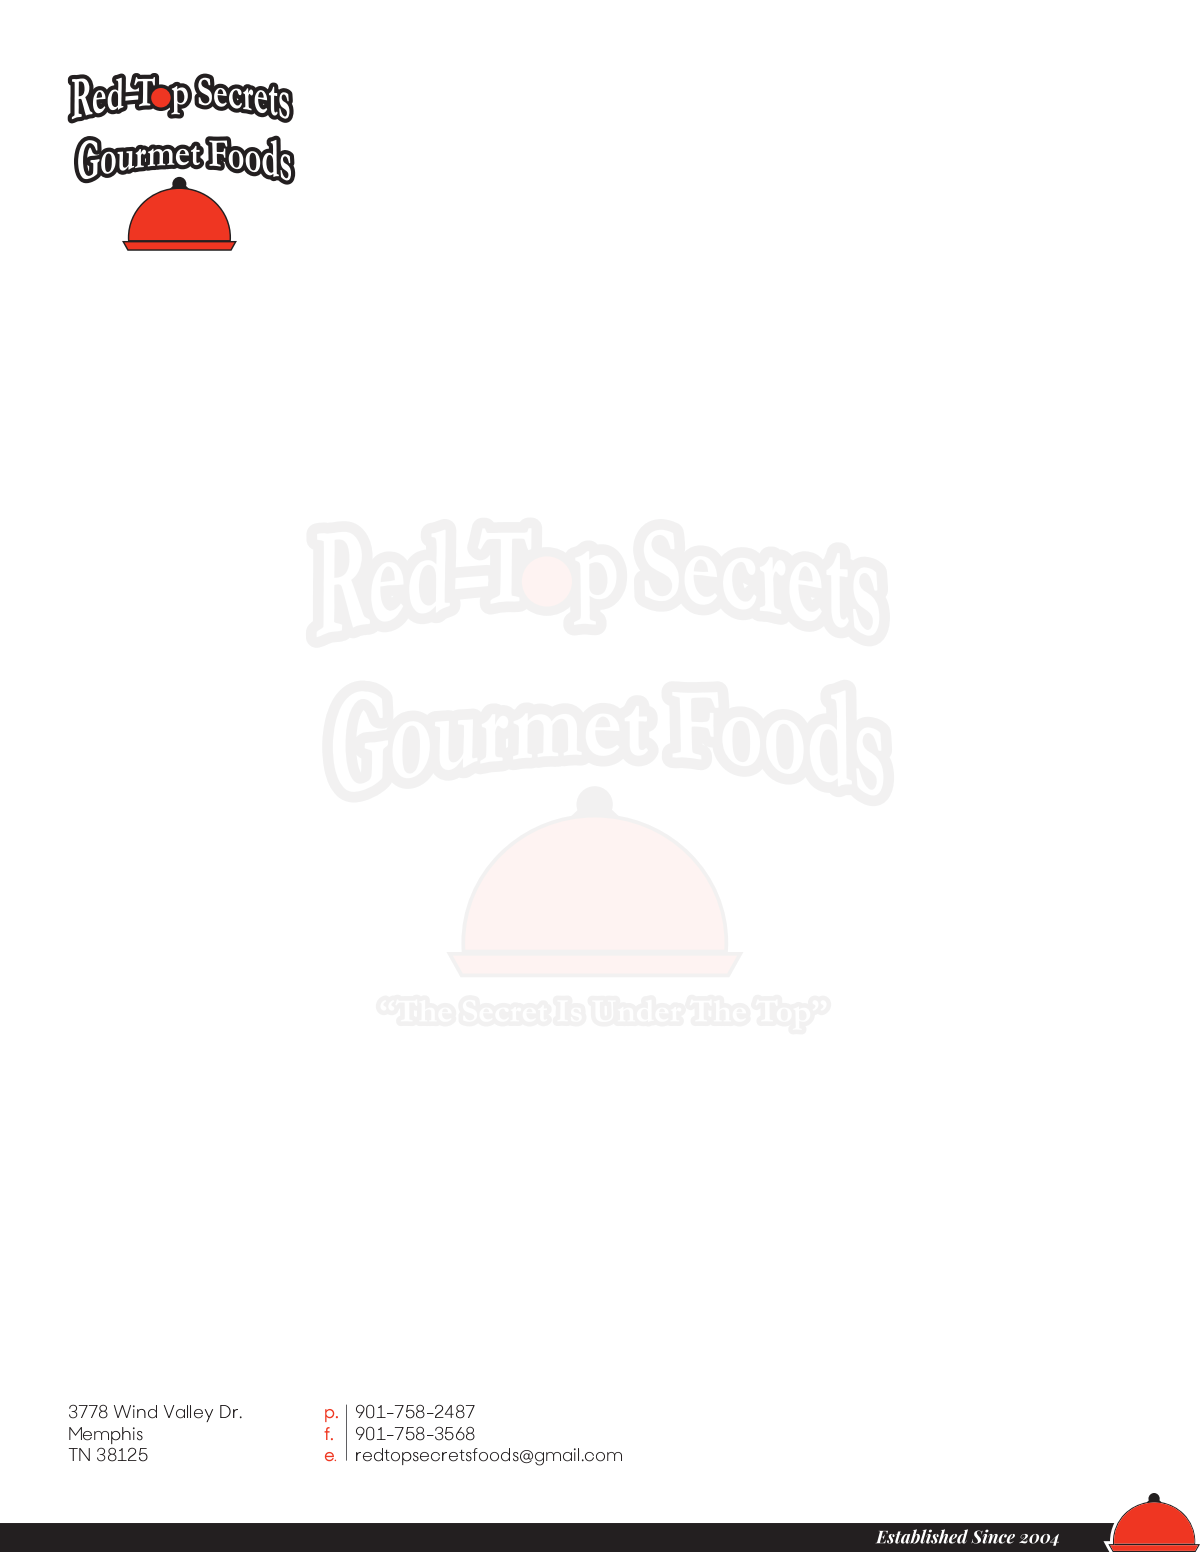 Red-Top Secrets Gourmet Foods